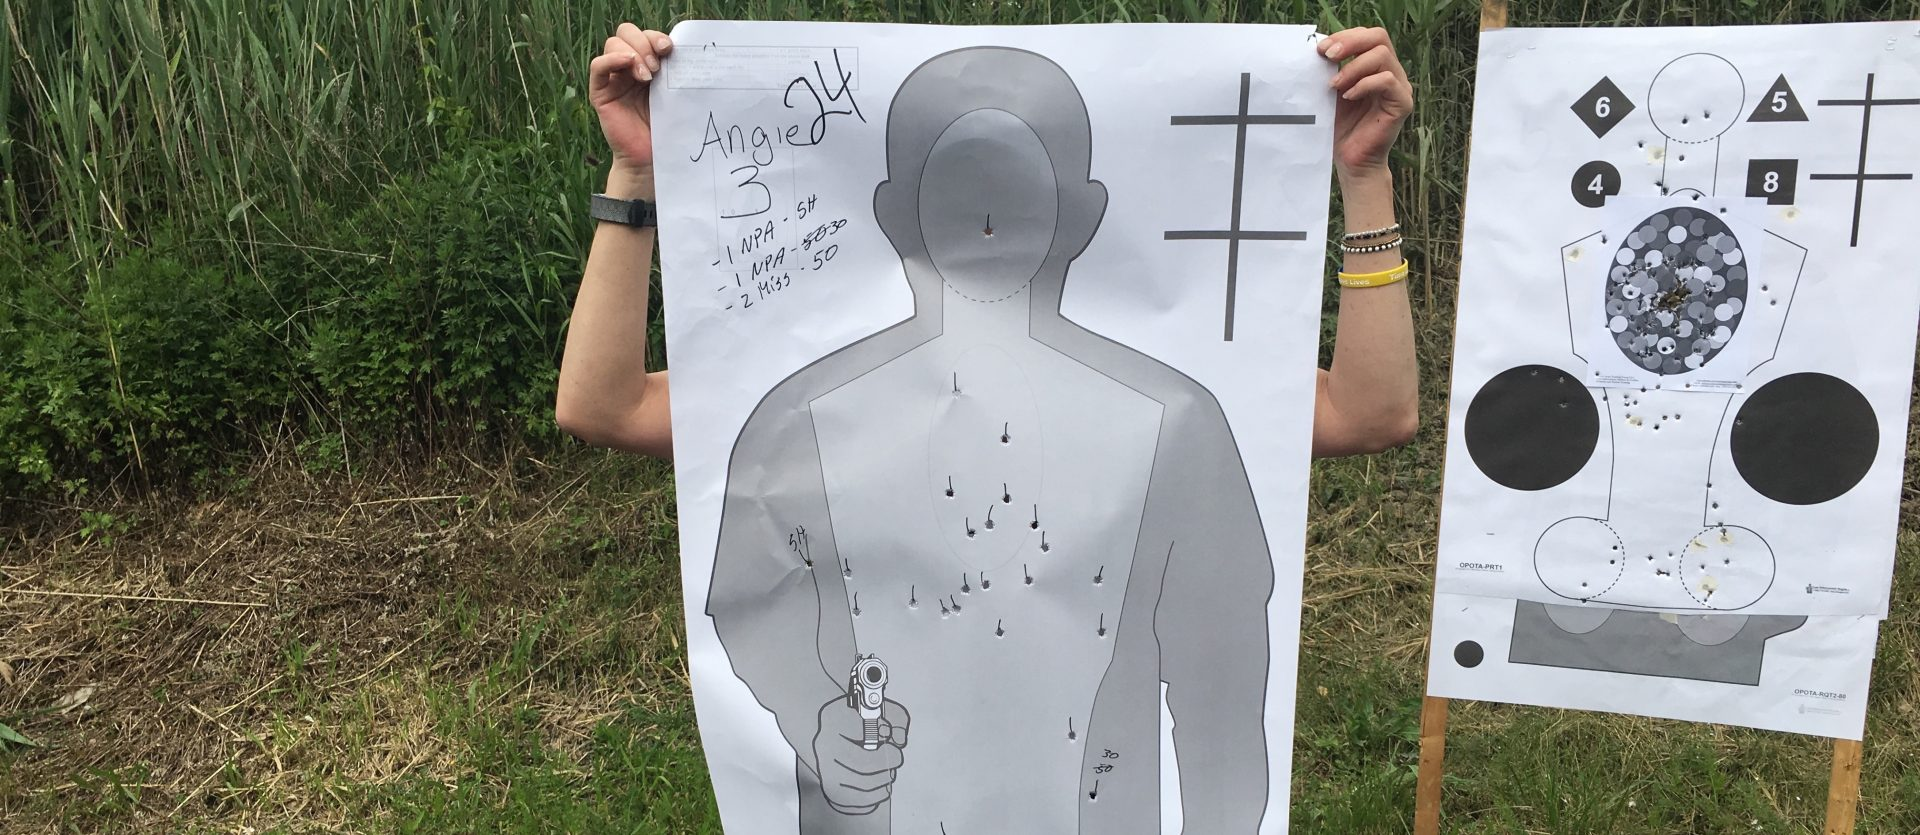 """Angie, a 5th grade teacher in the training program, uses one of her targets to shield her identity. """"I never myself had a gun, didn't grow up around them, so it wasn't in my life. But as I became a teacher and having the kids that are in my classroom and knowing that if there is a kind of threat, I'd want to protect them,"""" she said."""